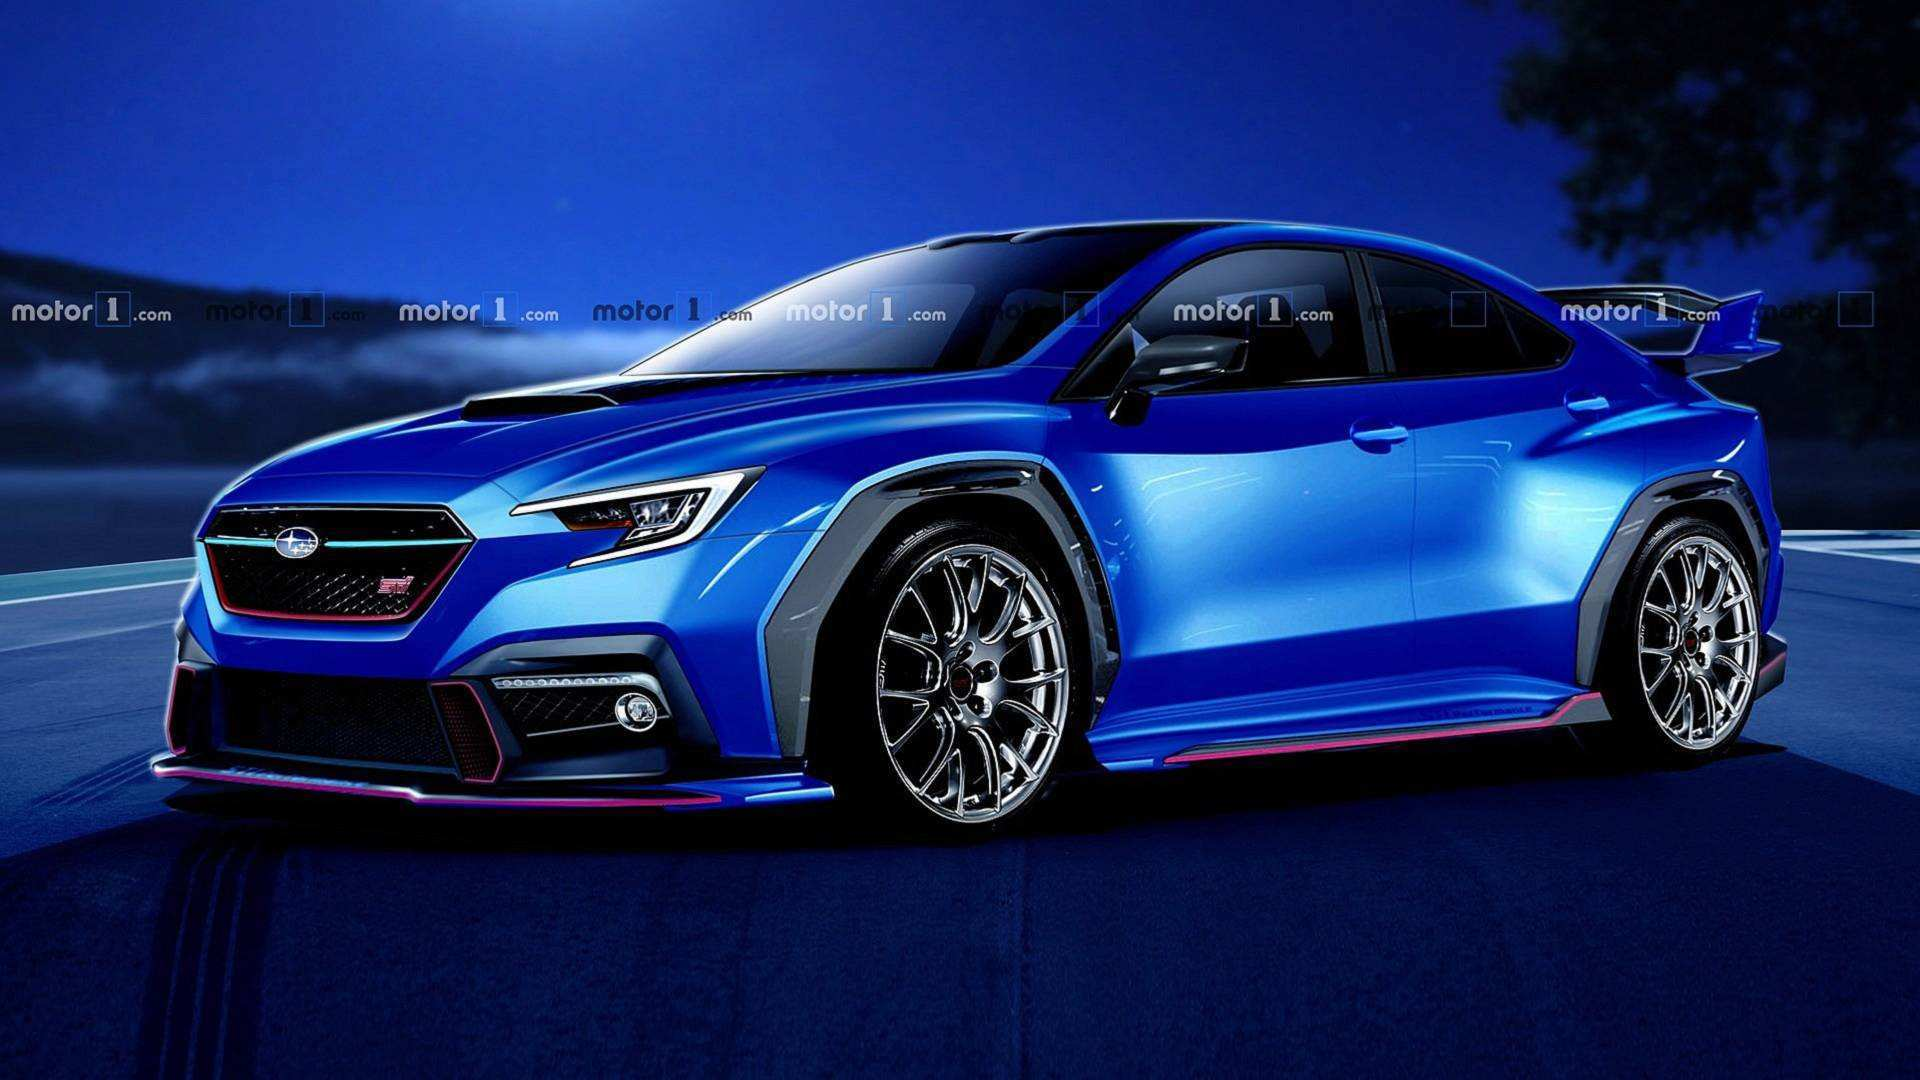 60 All New Subaru Sti 2020 Exterior Picture with Subaru Sti 2020 Exterior